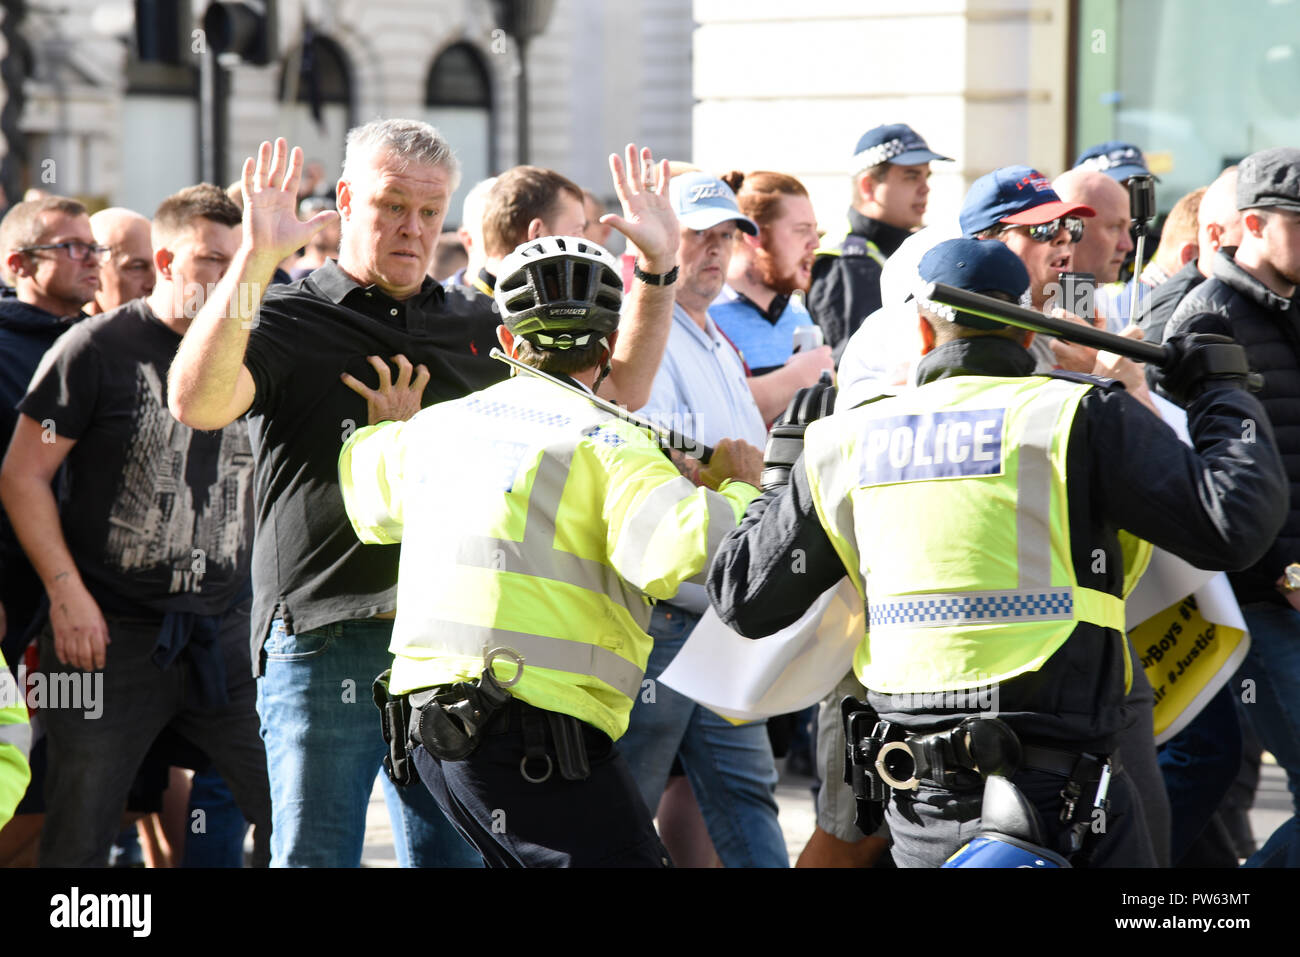 democratic-football-lads-alliance-dfla-marching-towards-parliament-london-in-protest-demonstration-marchers-broke-through-a-police-cordon-and-scuffles-took-place-PW63MT.jpg